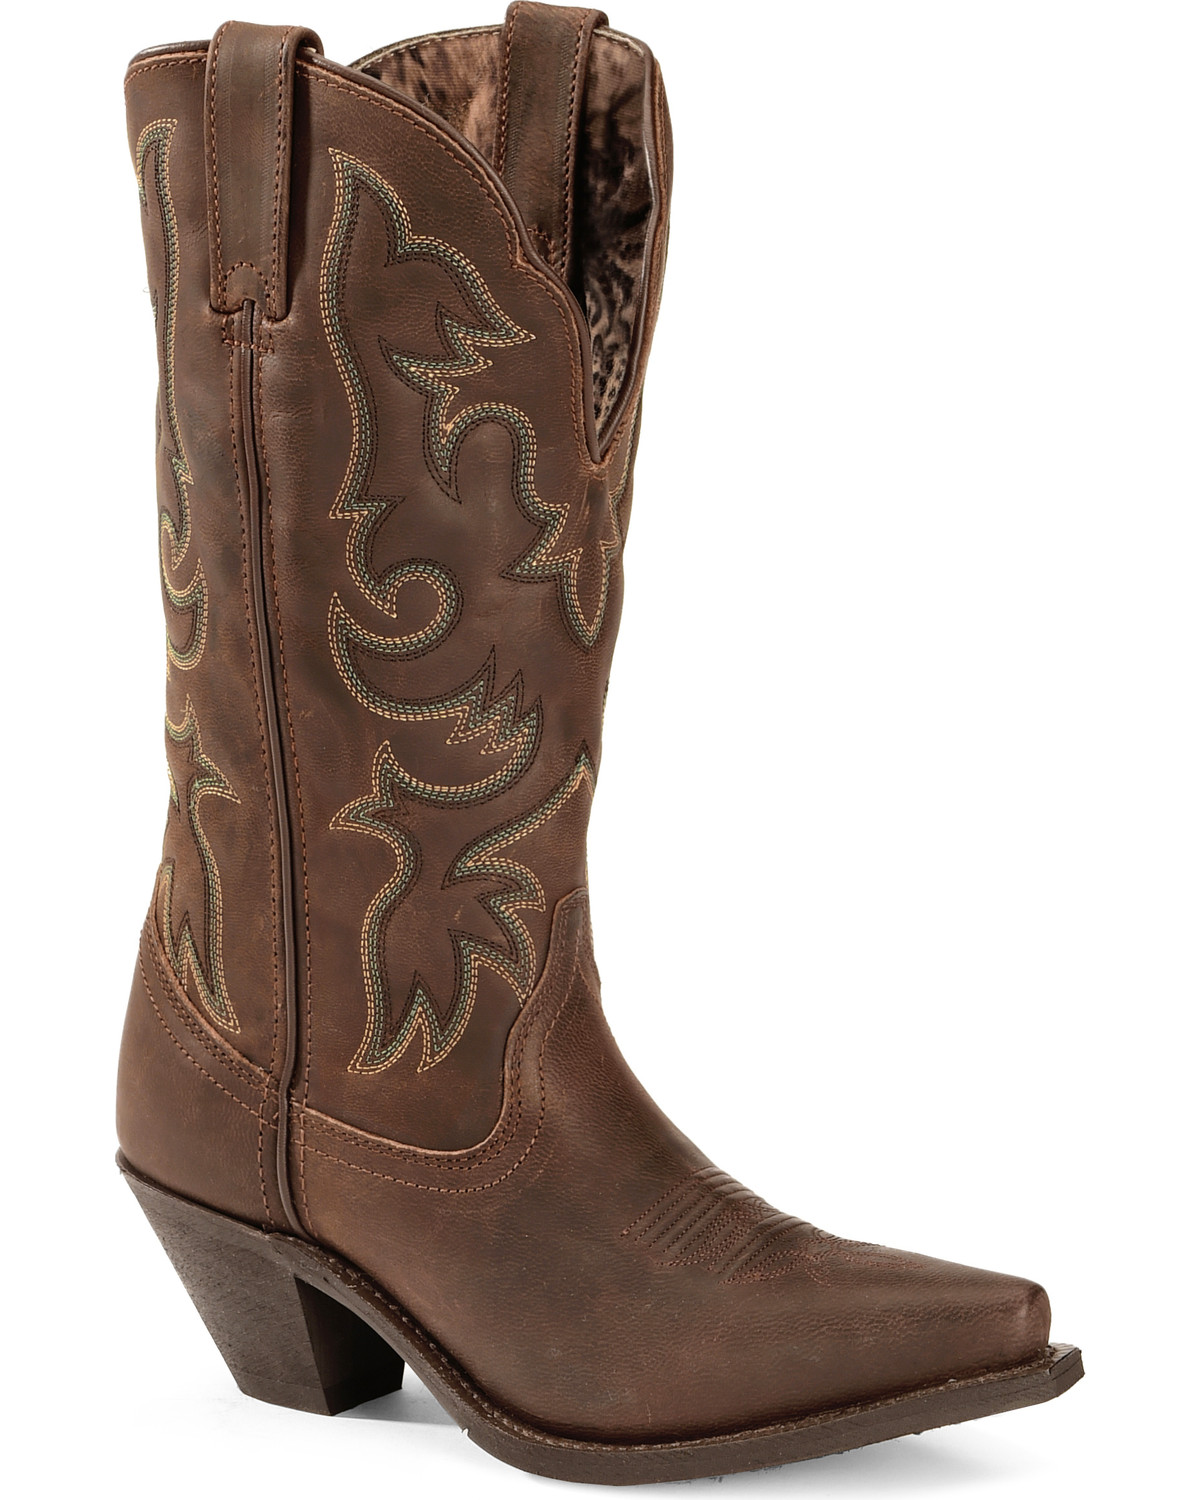 Cowboy Boots For Females